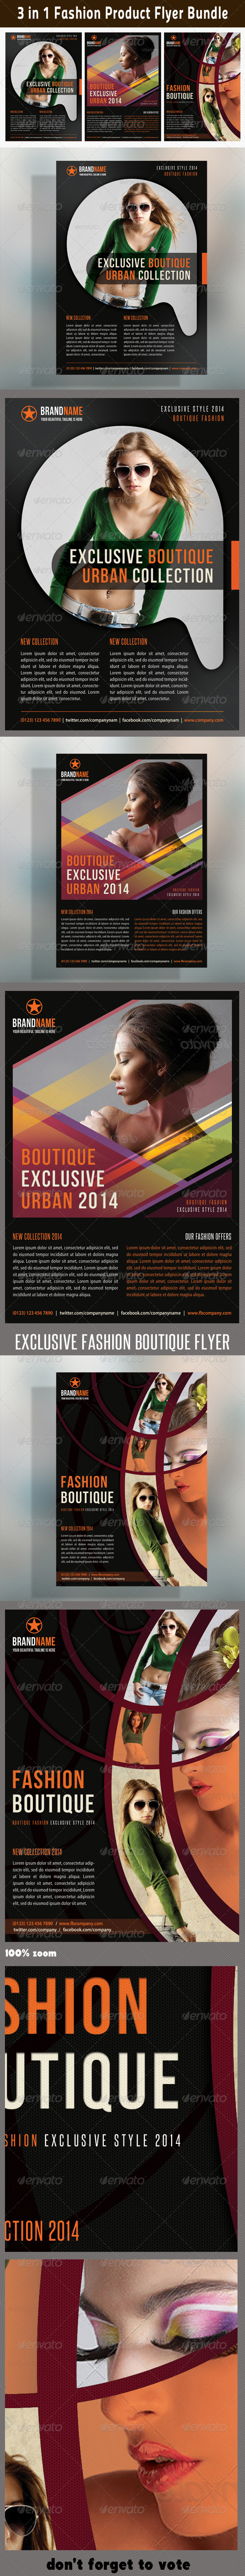 GraphicRiver 3 in 1 Fashion Product Flyer Bundle 08 6643721